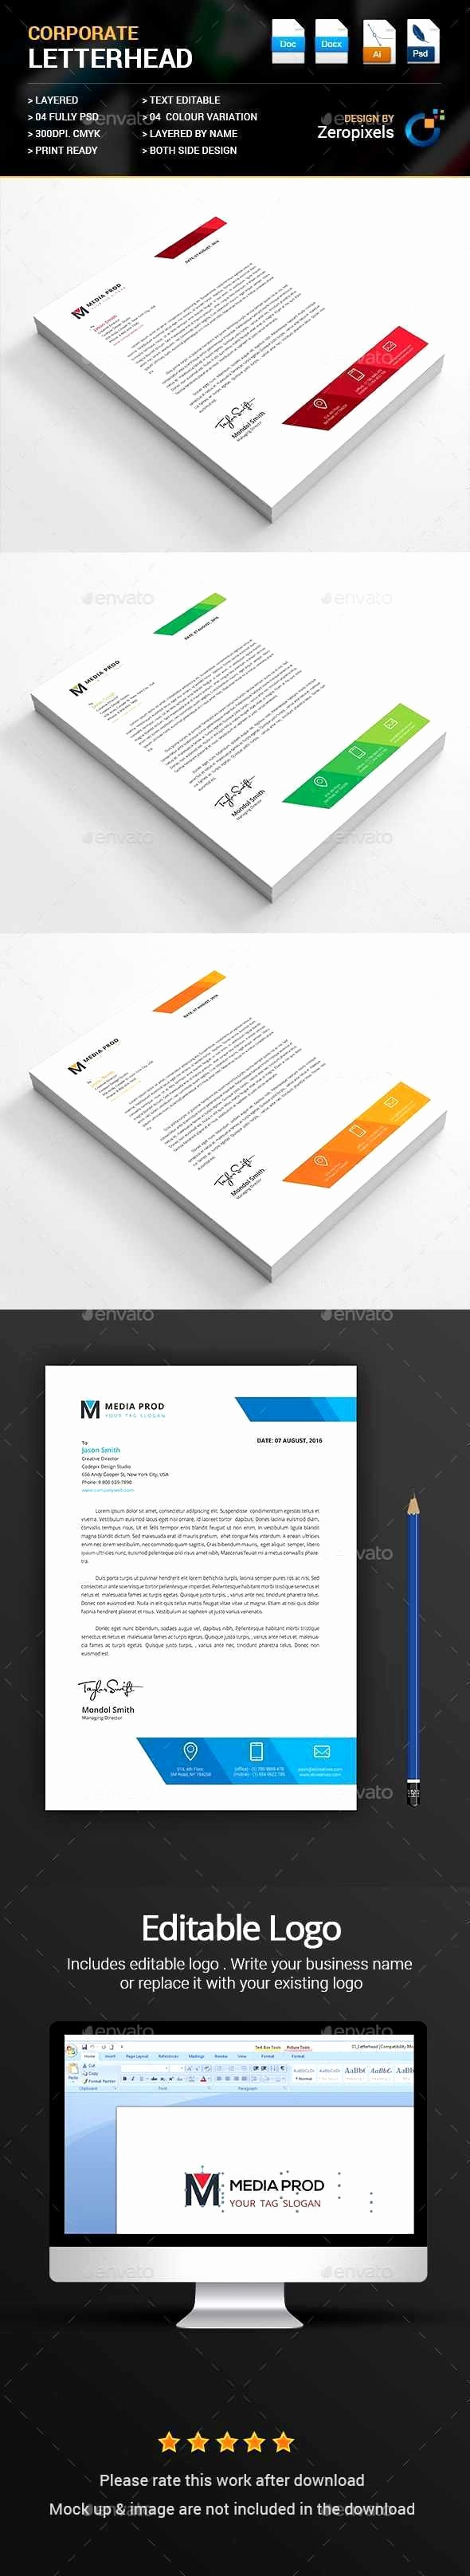 Royal Brites Business Card Template Unique Royal Brites Business Card Template Awesome Geographics